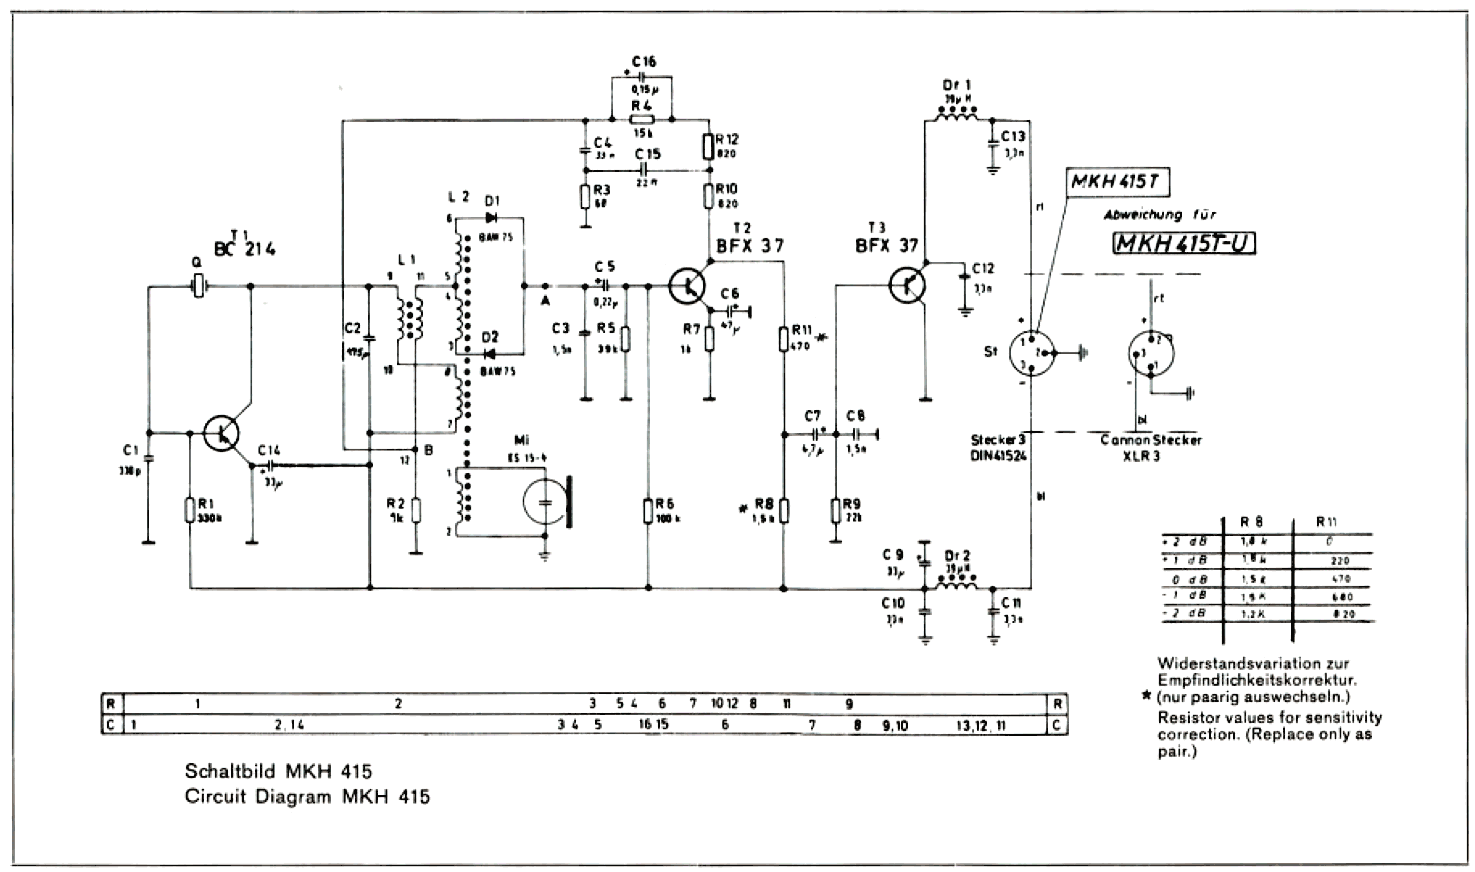 wiring diagram together with headset with mic wiring diagram wiring